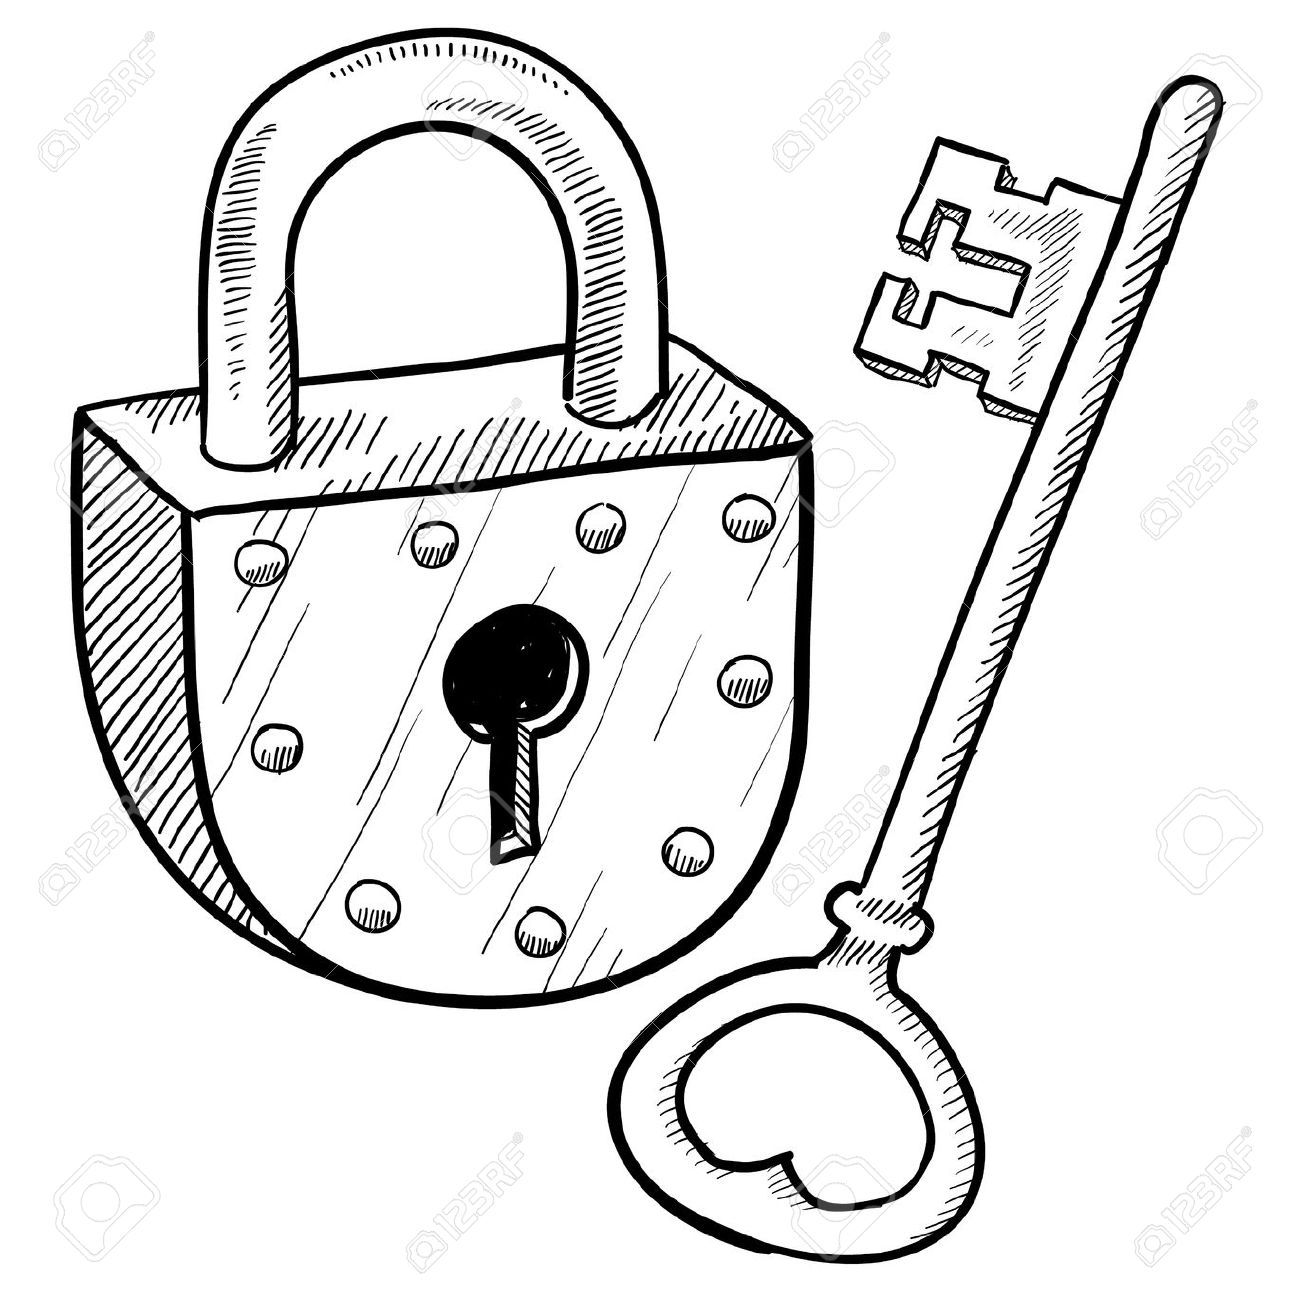 Padlock Stock Illustrations Cliparts And Royalty Free